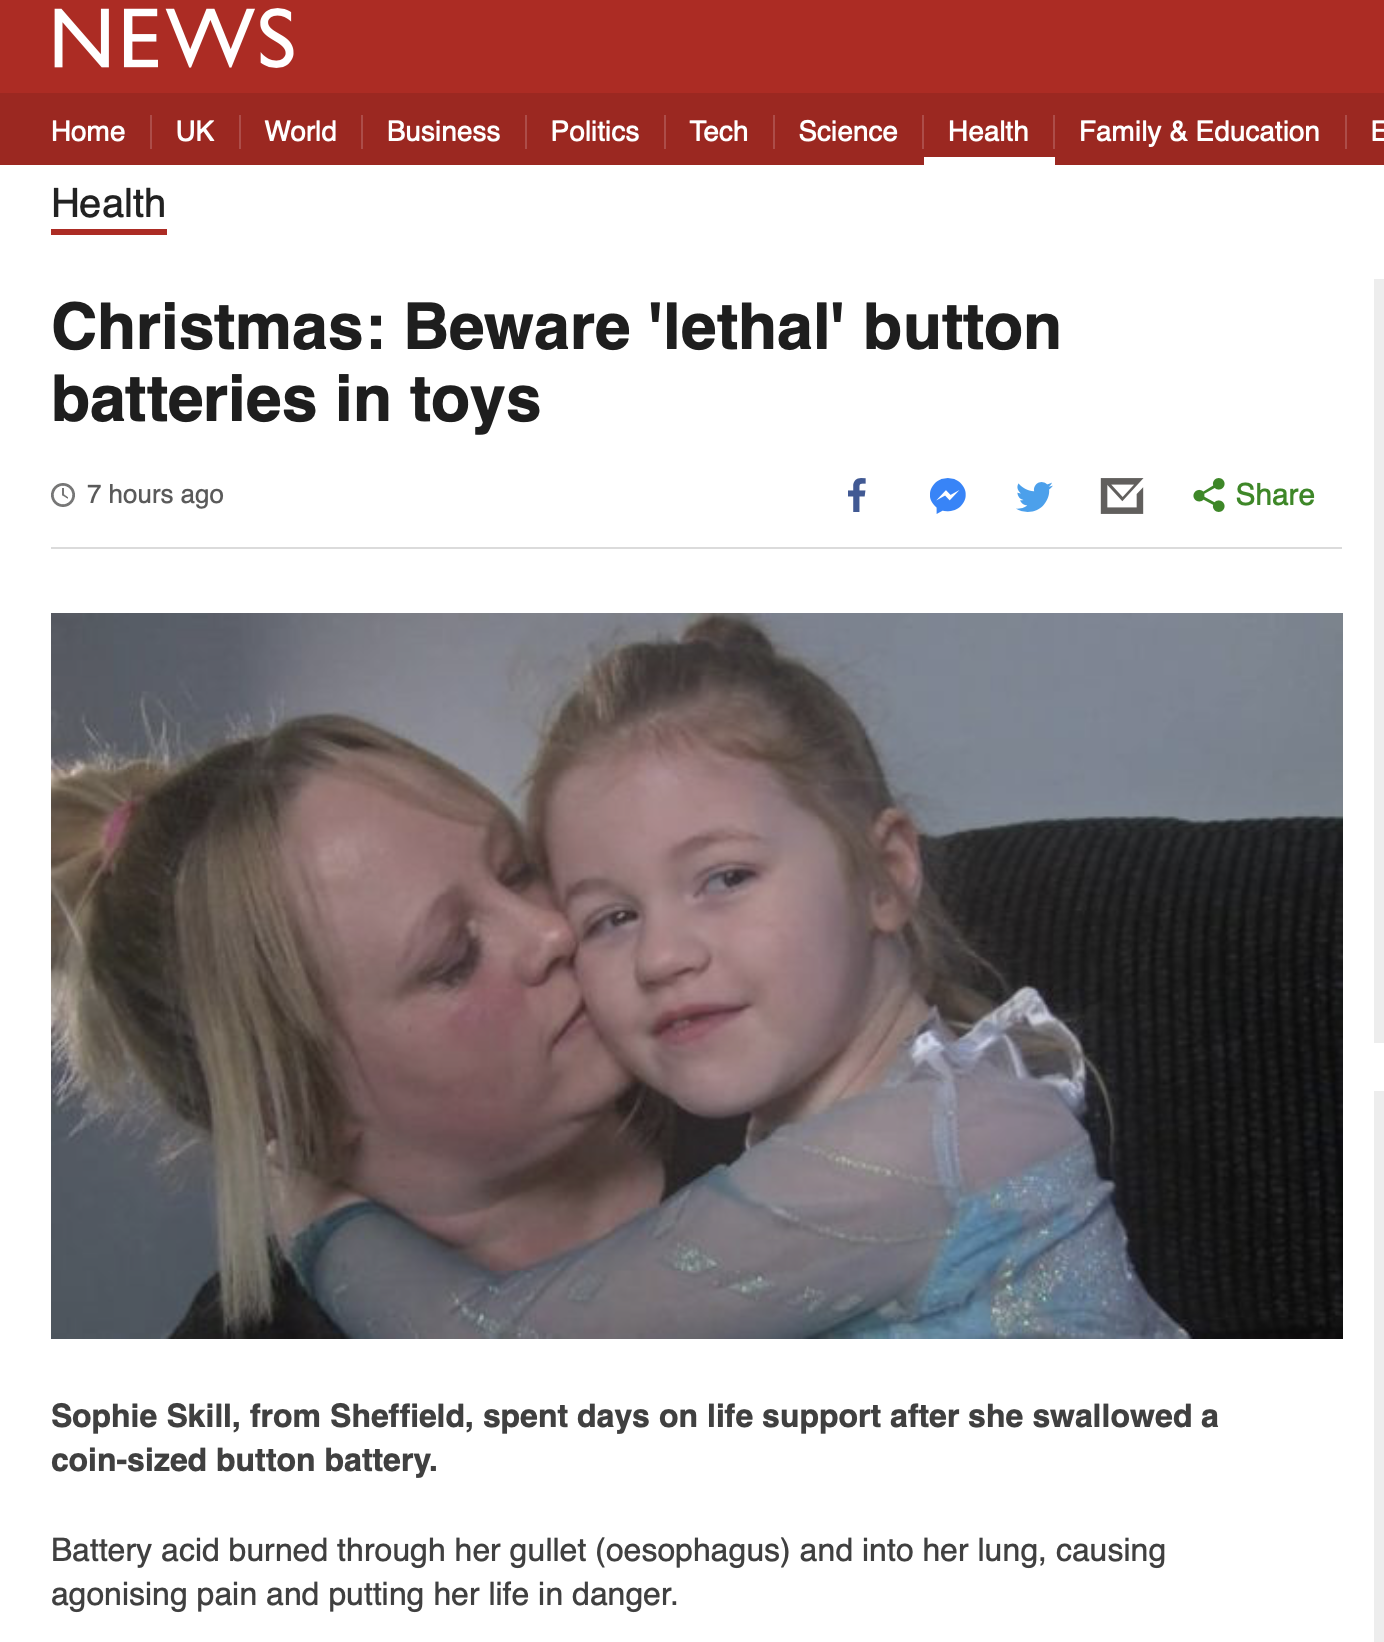 Christmas: Beware 'lethal' button batteries in toys